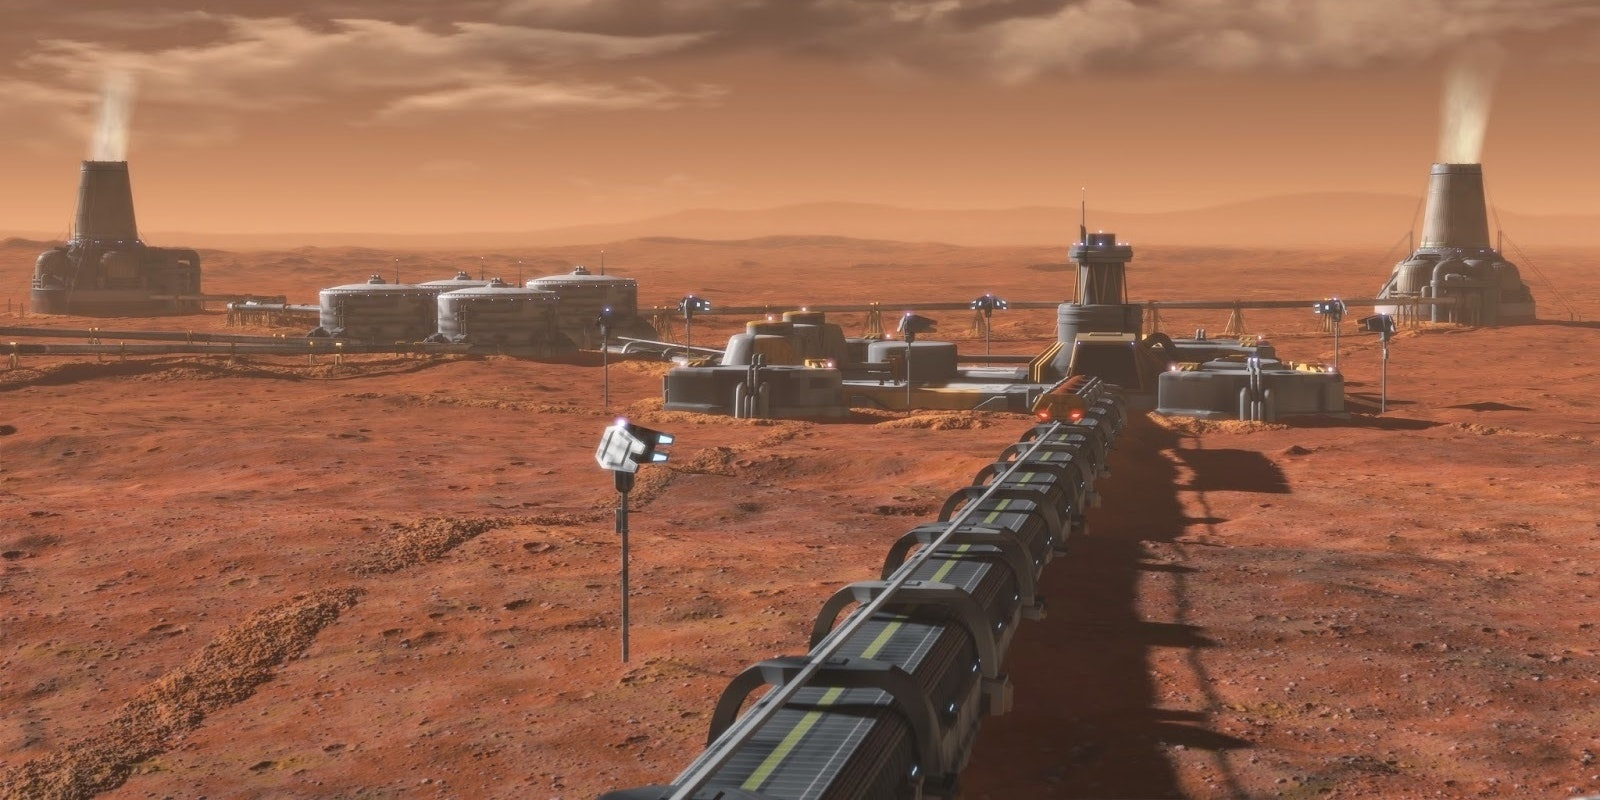 Martian factories will produce the only food on the planet. That means a potential monopoly on life.